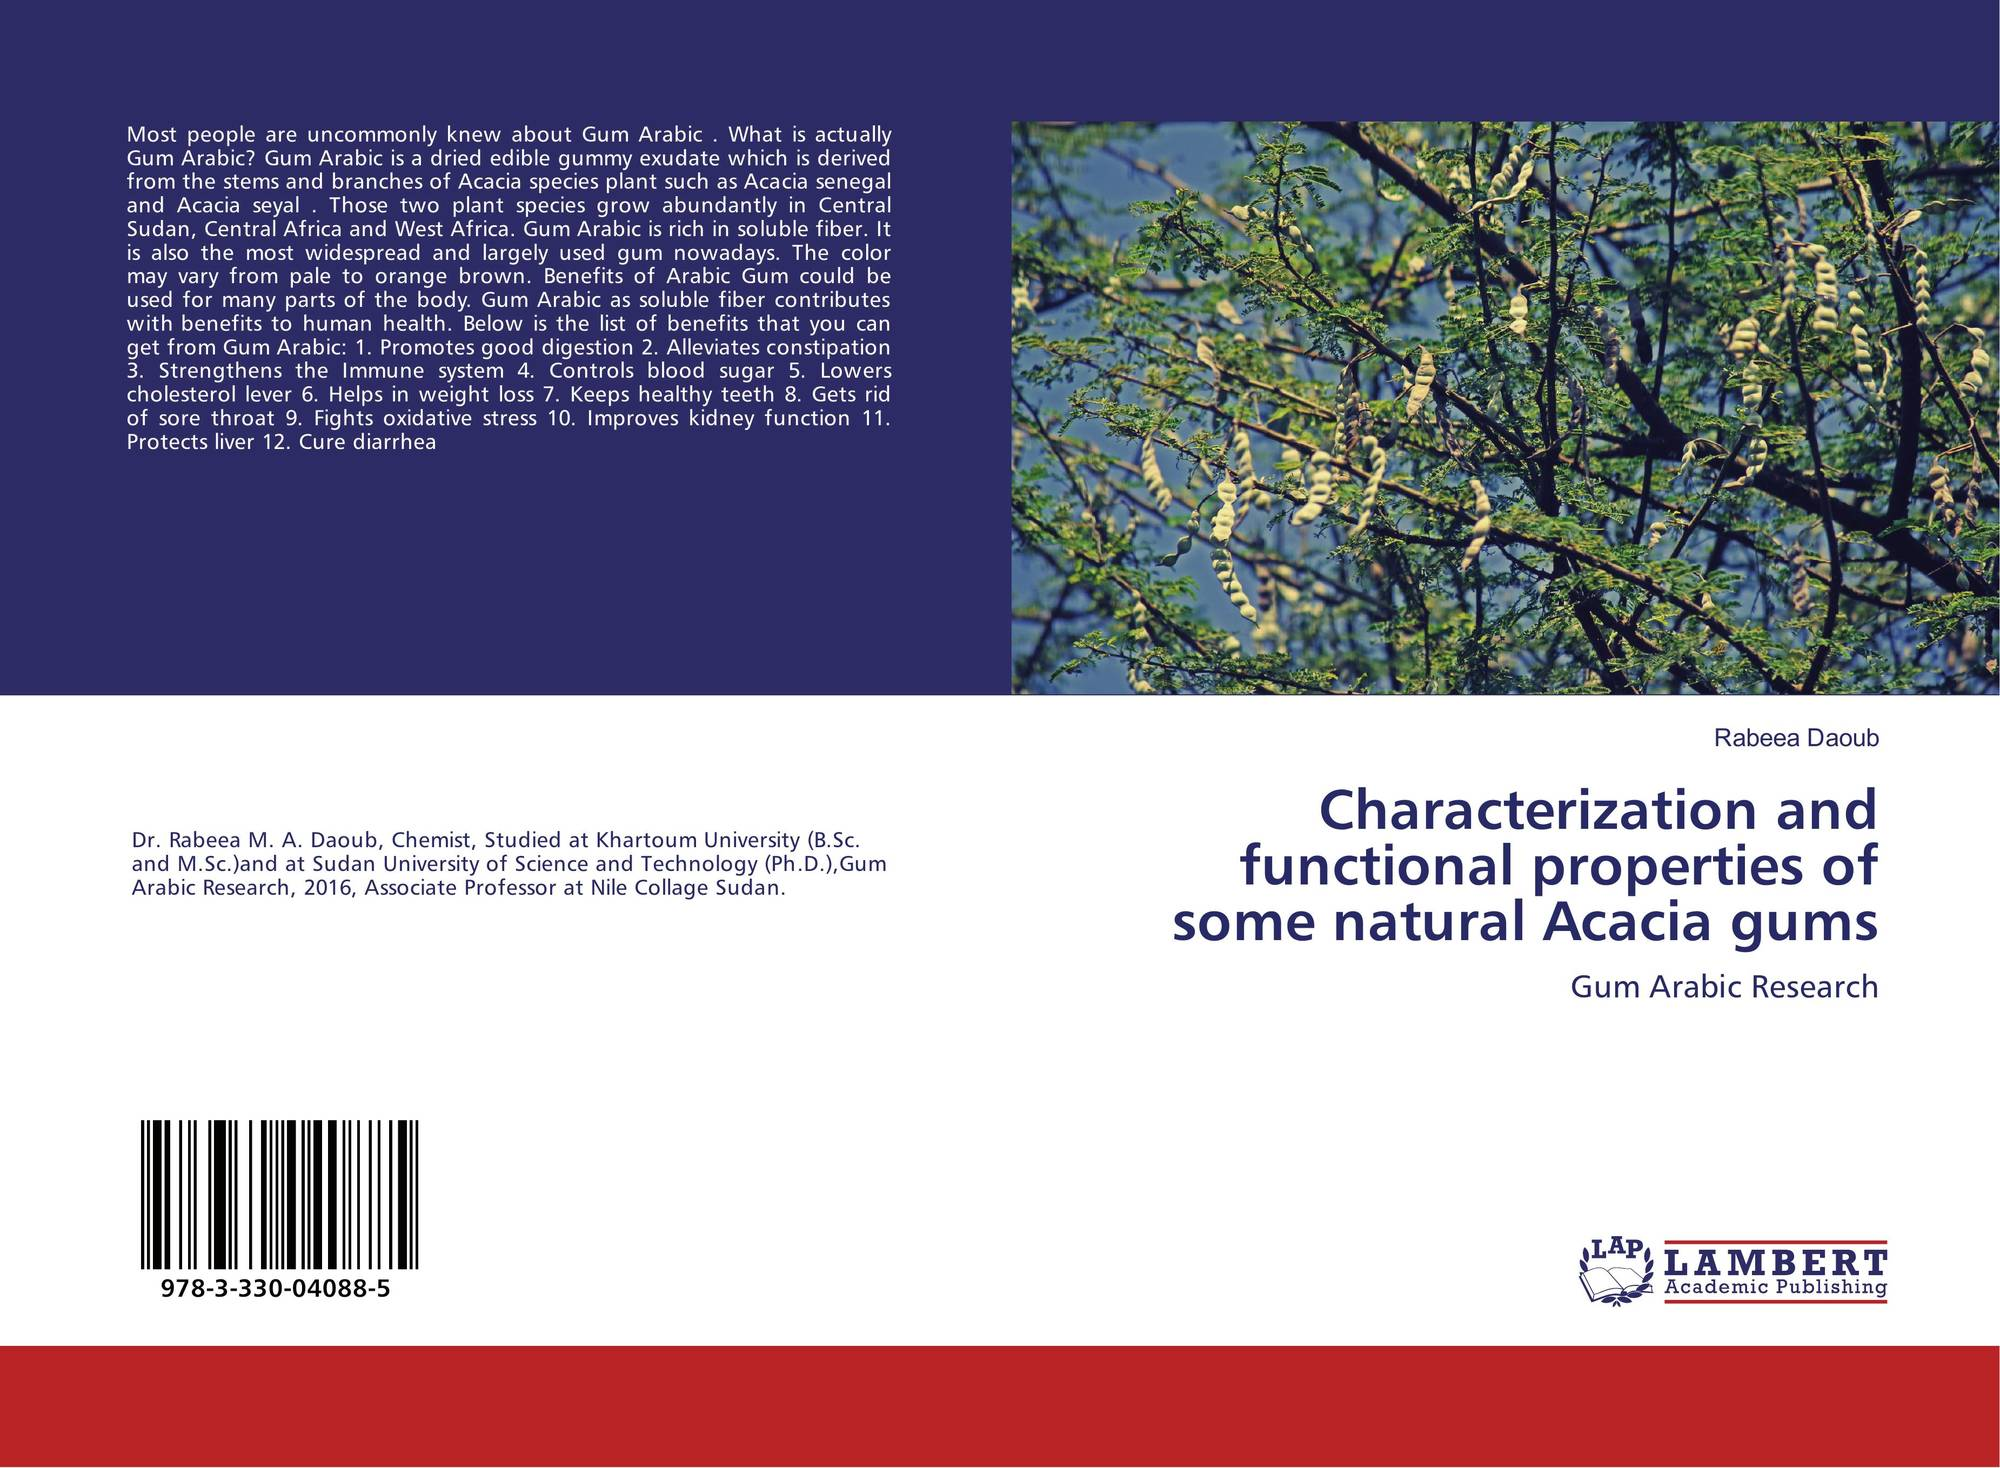 Characterization And Functional Properties Of Some Natural Acacia